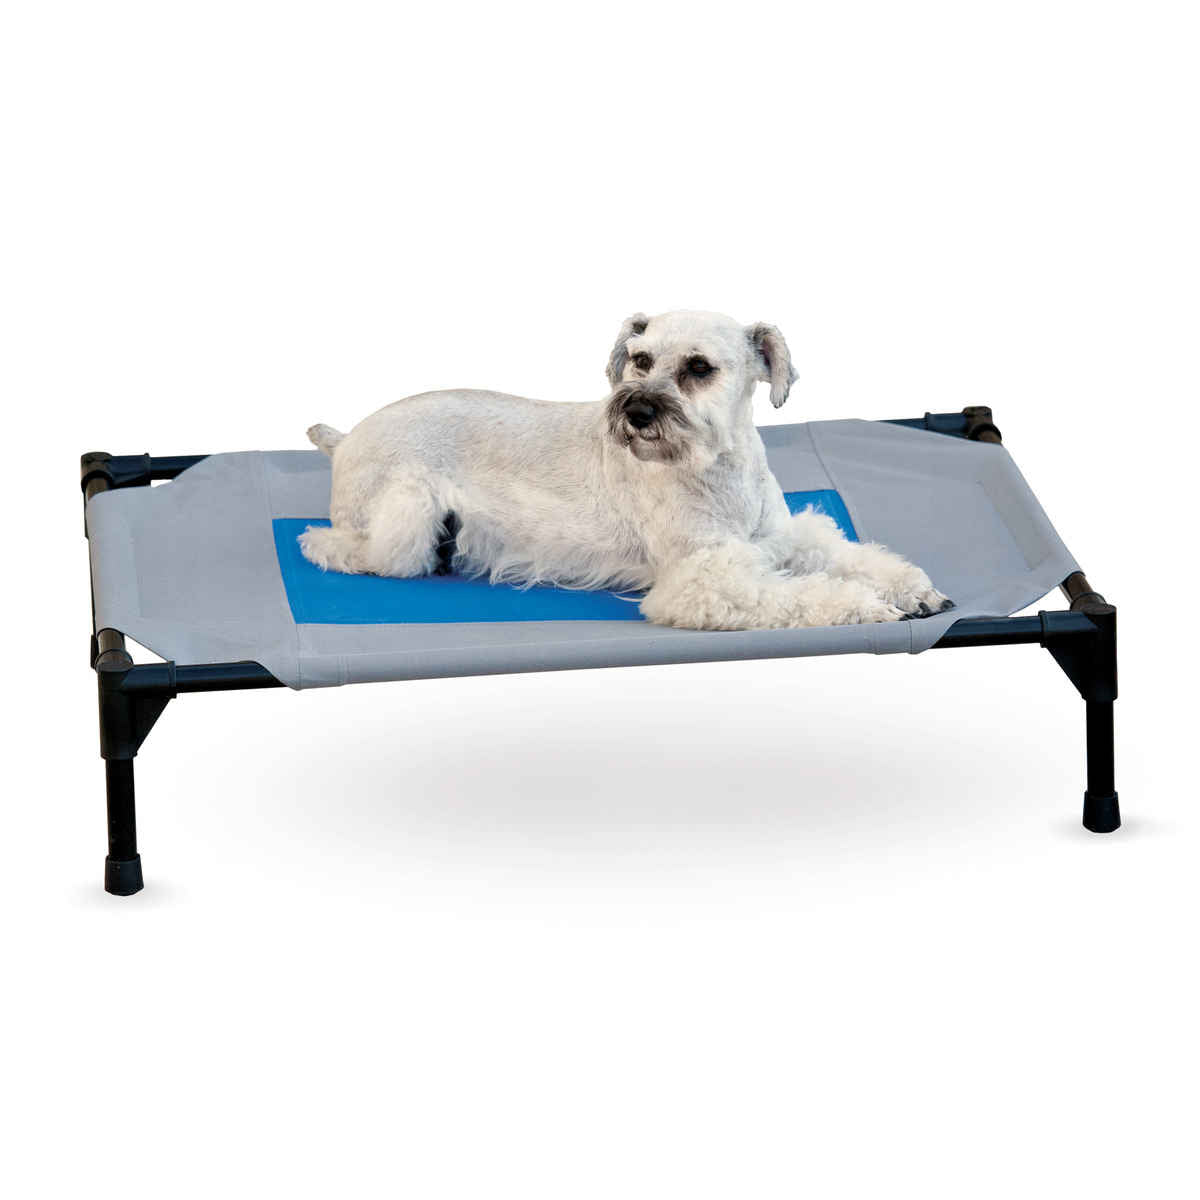 "K&H Pet Products Coolin' Pet Cot Medium Gray / Blue 25"" x 32"" x 7"""